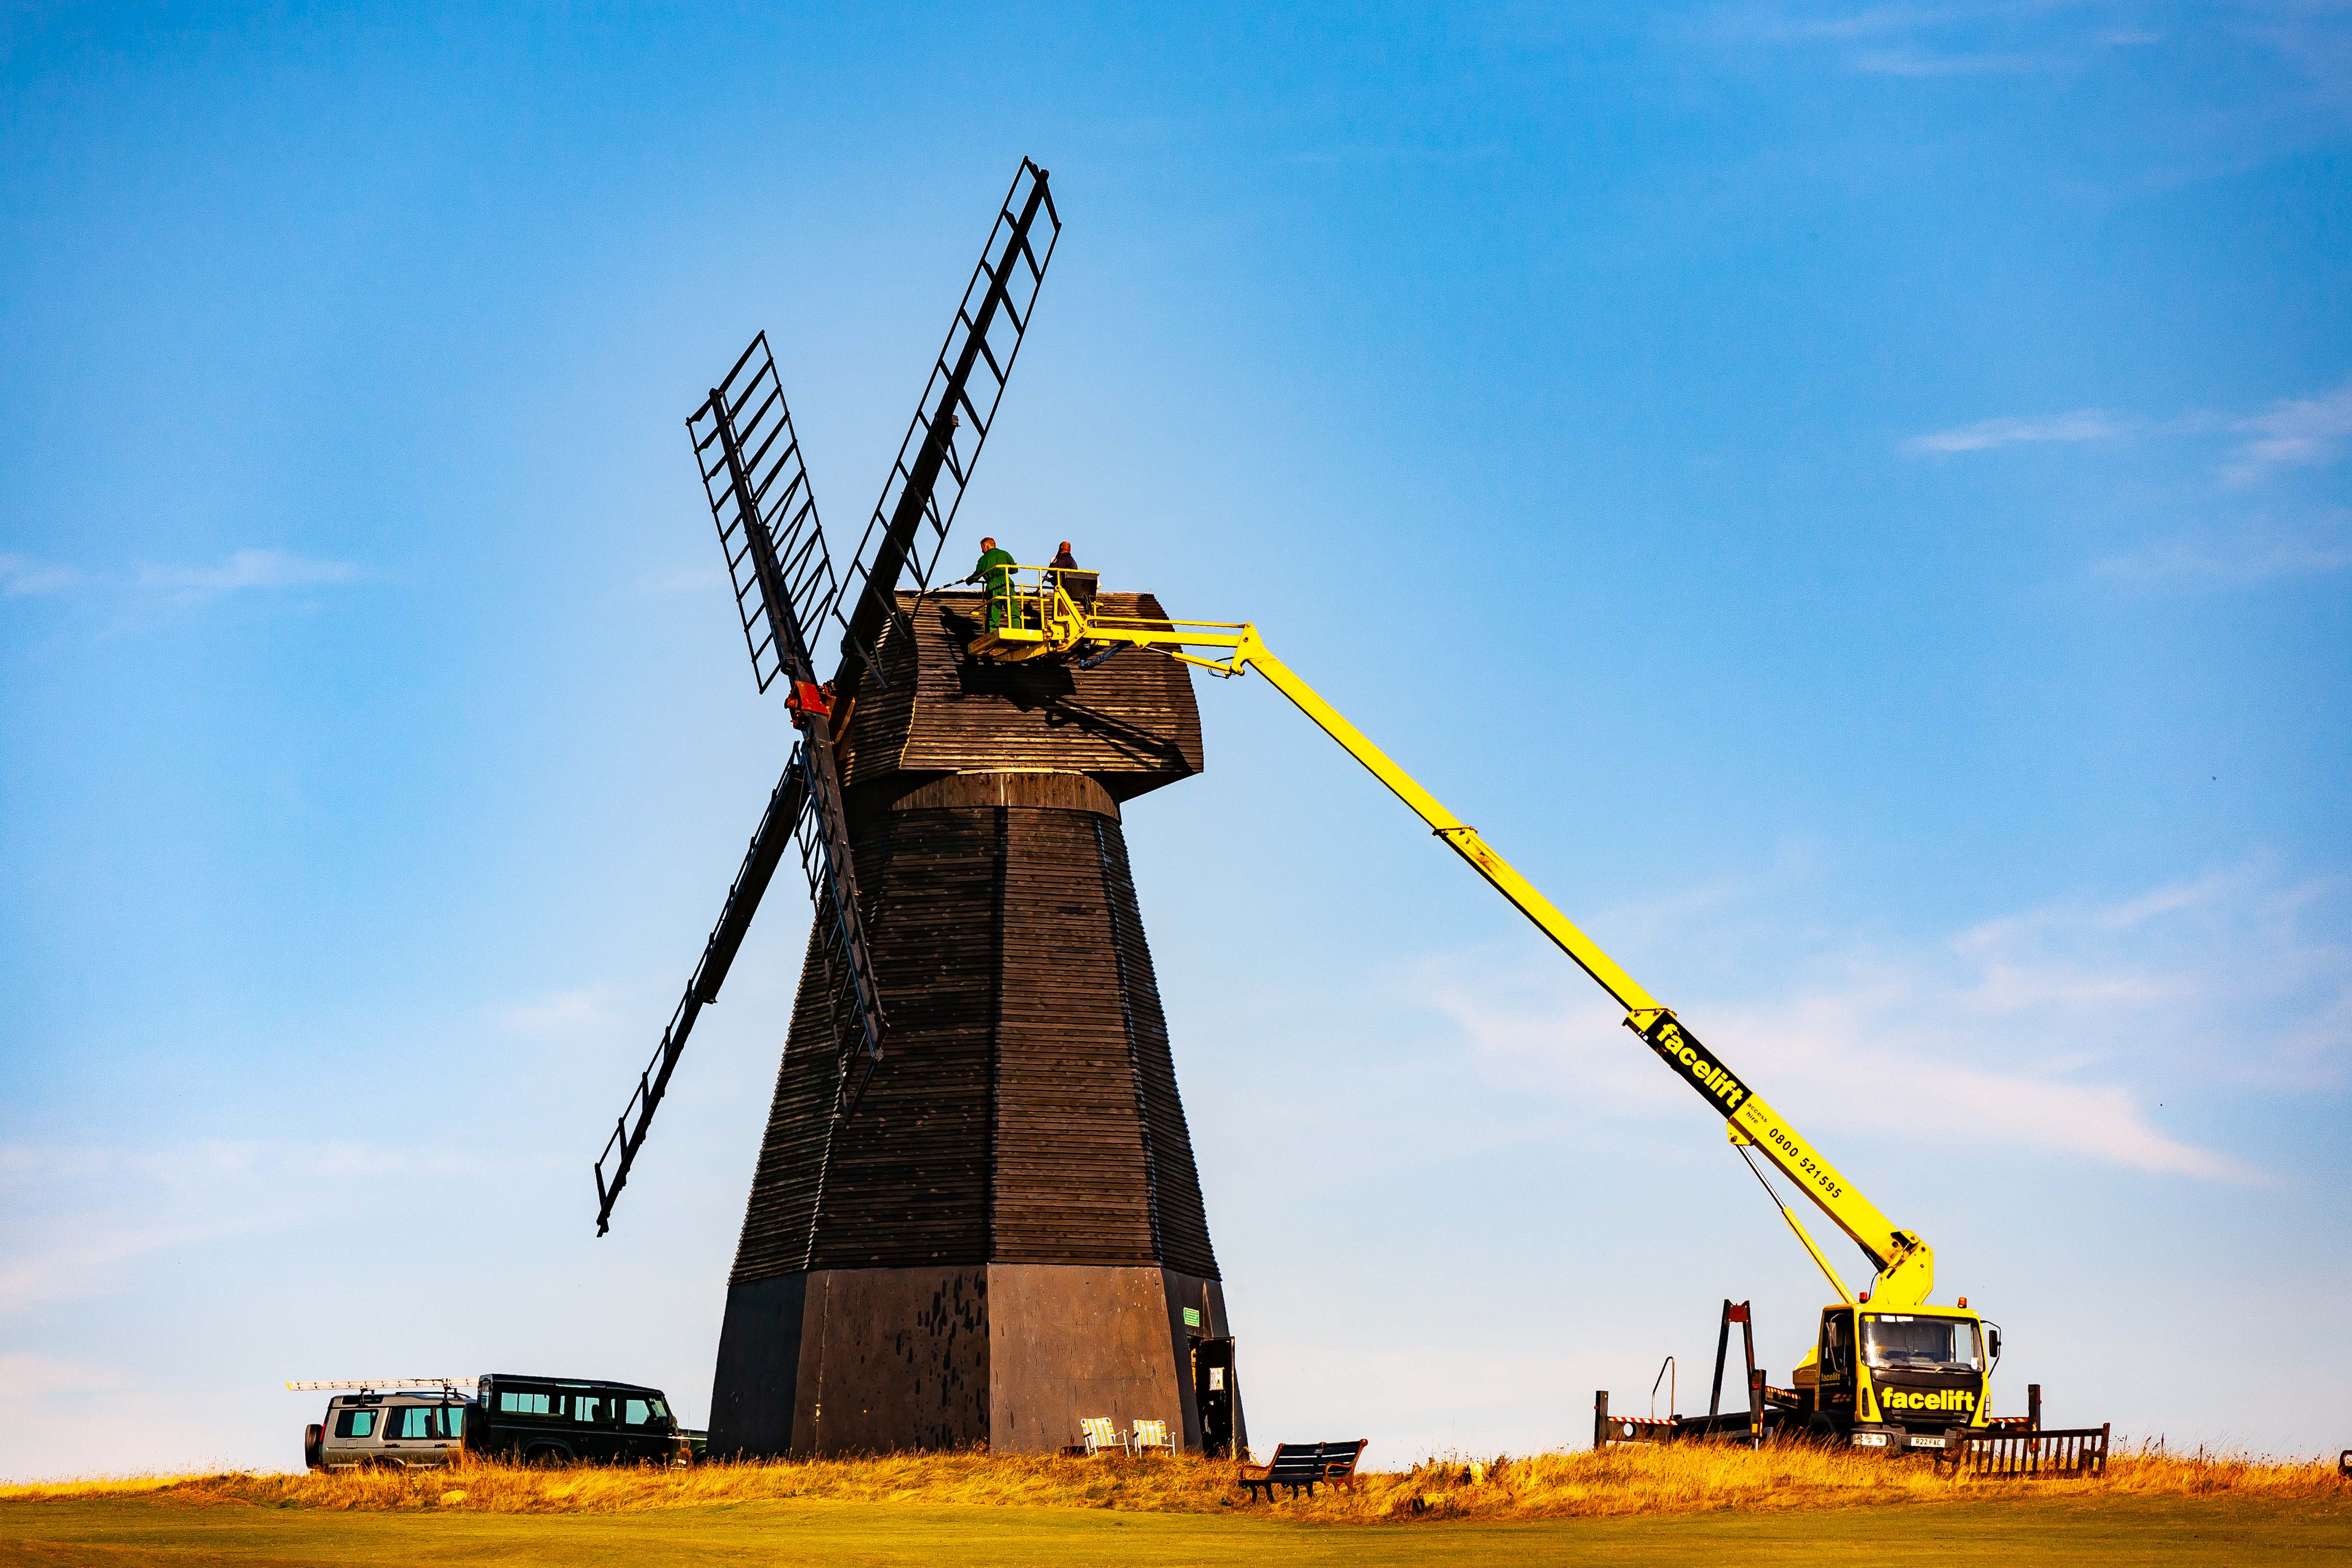 UK, Brighton And Hove Prov, Windmill Repair, 2009, IMG 3855